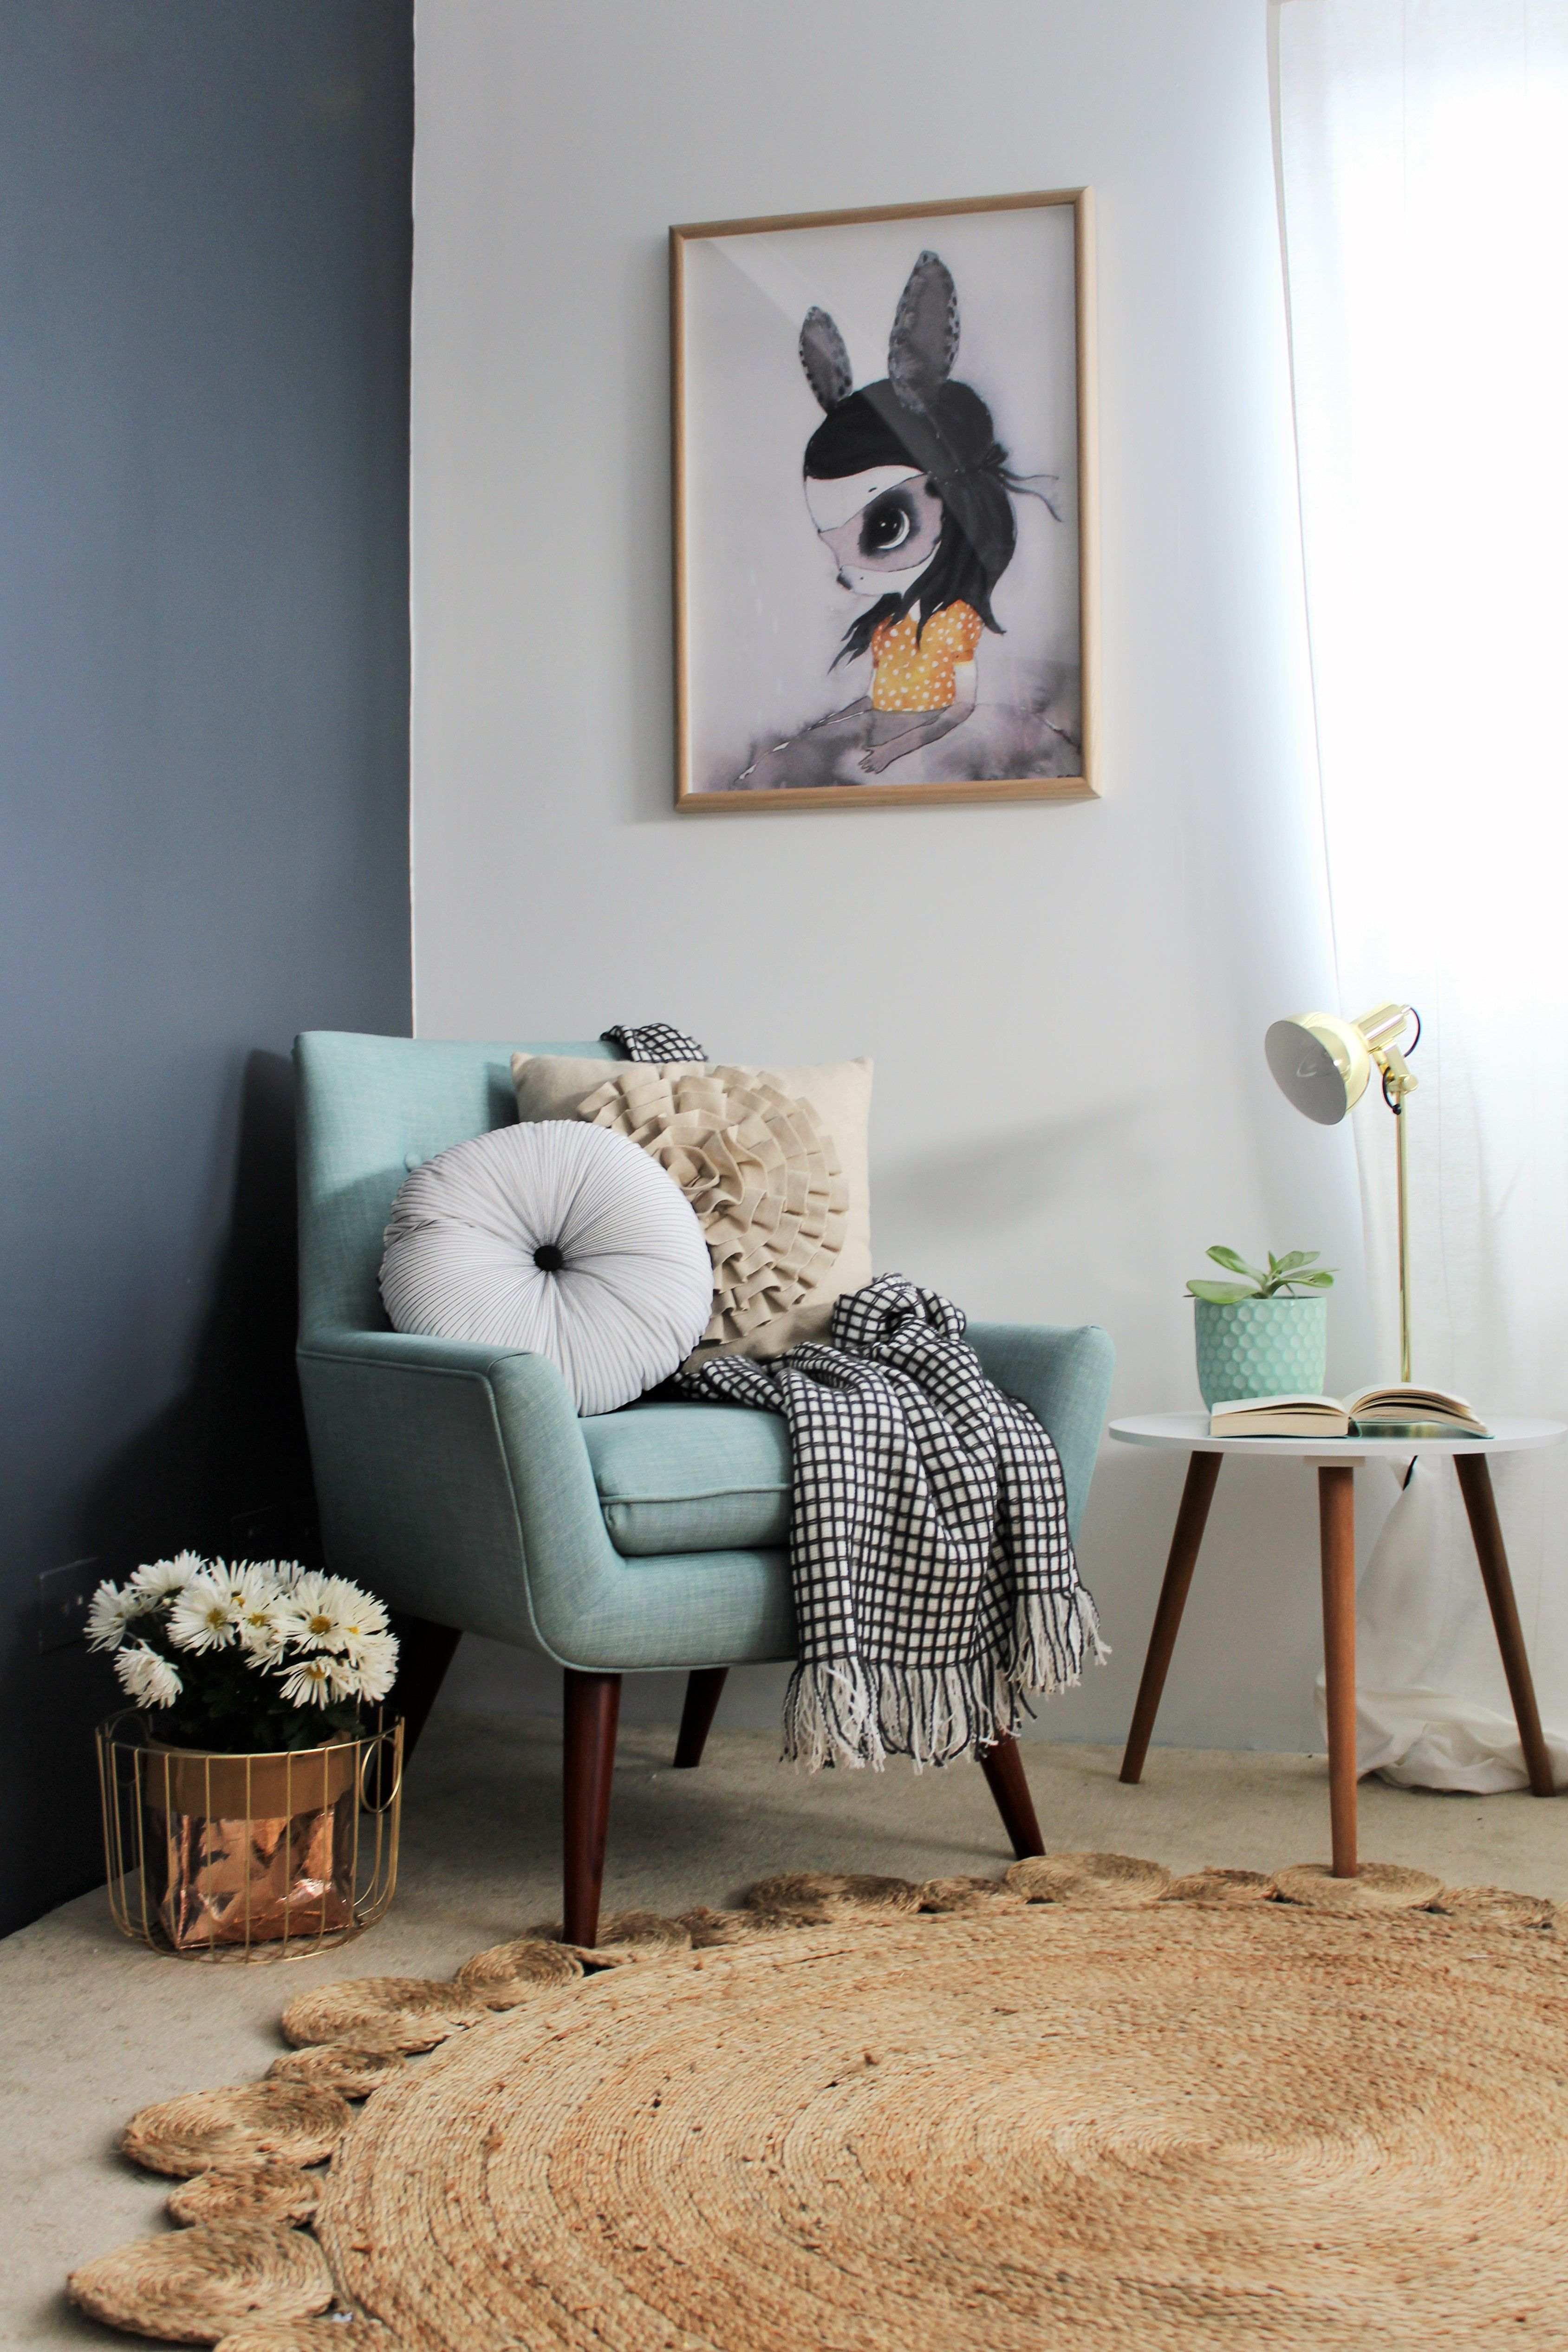 Kids bedroom ideas simple ways to inject warmth into your home with beautiful and affordable interior decor pieces